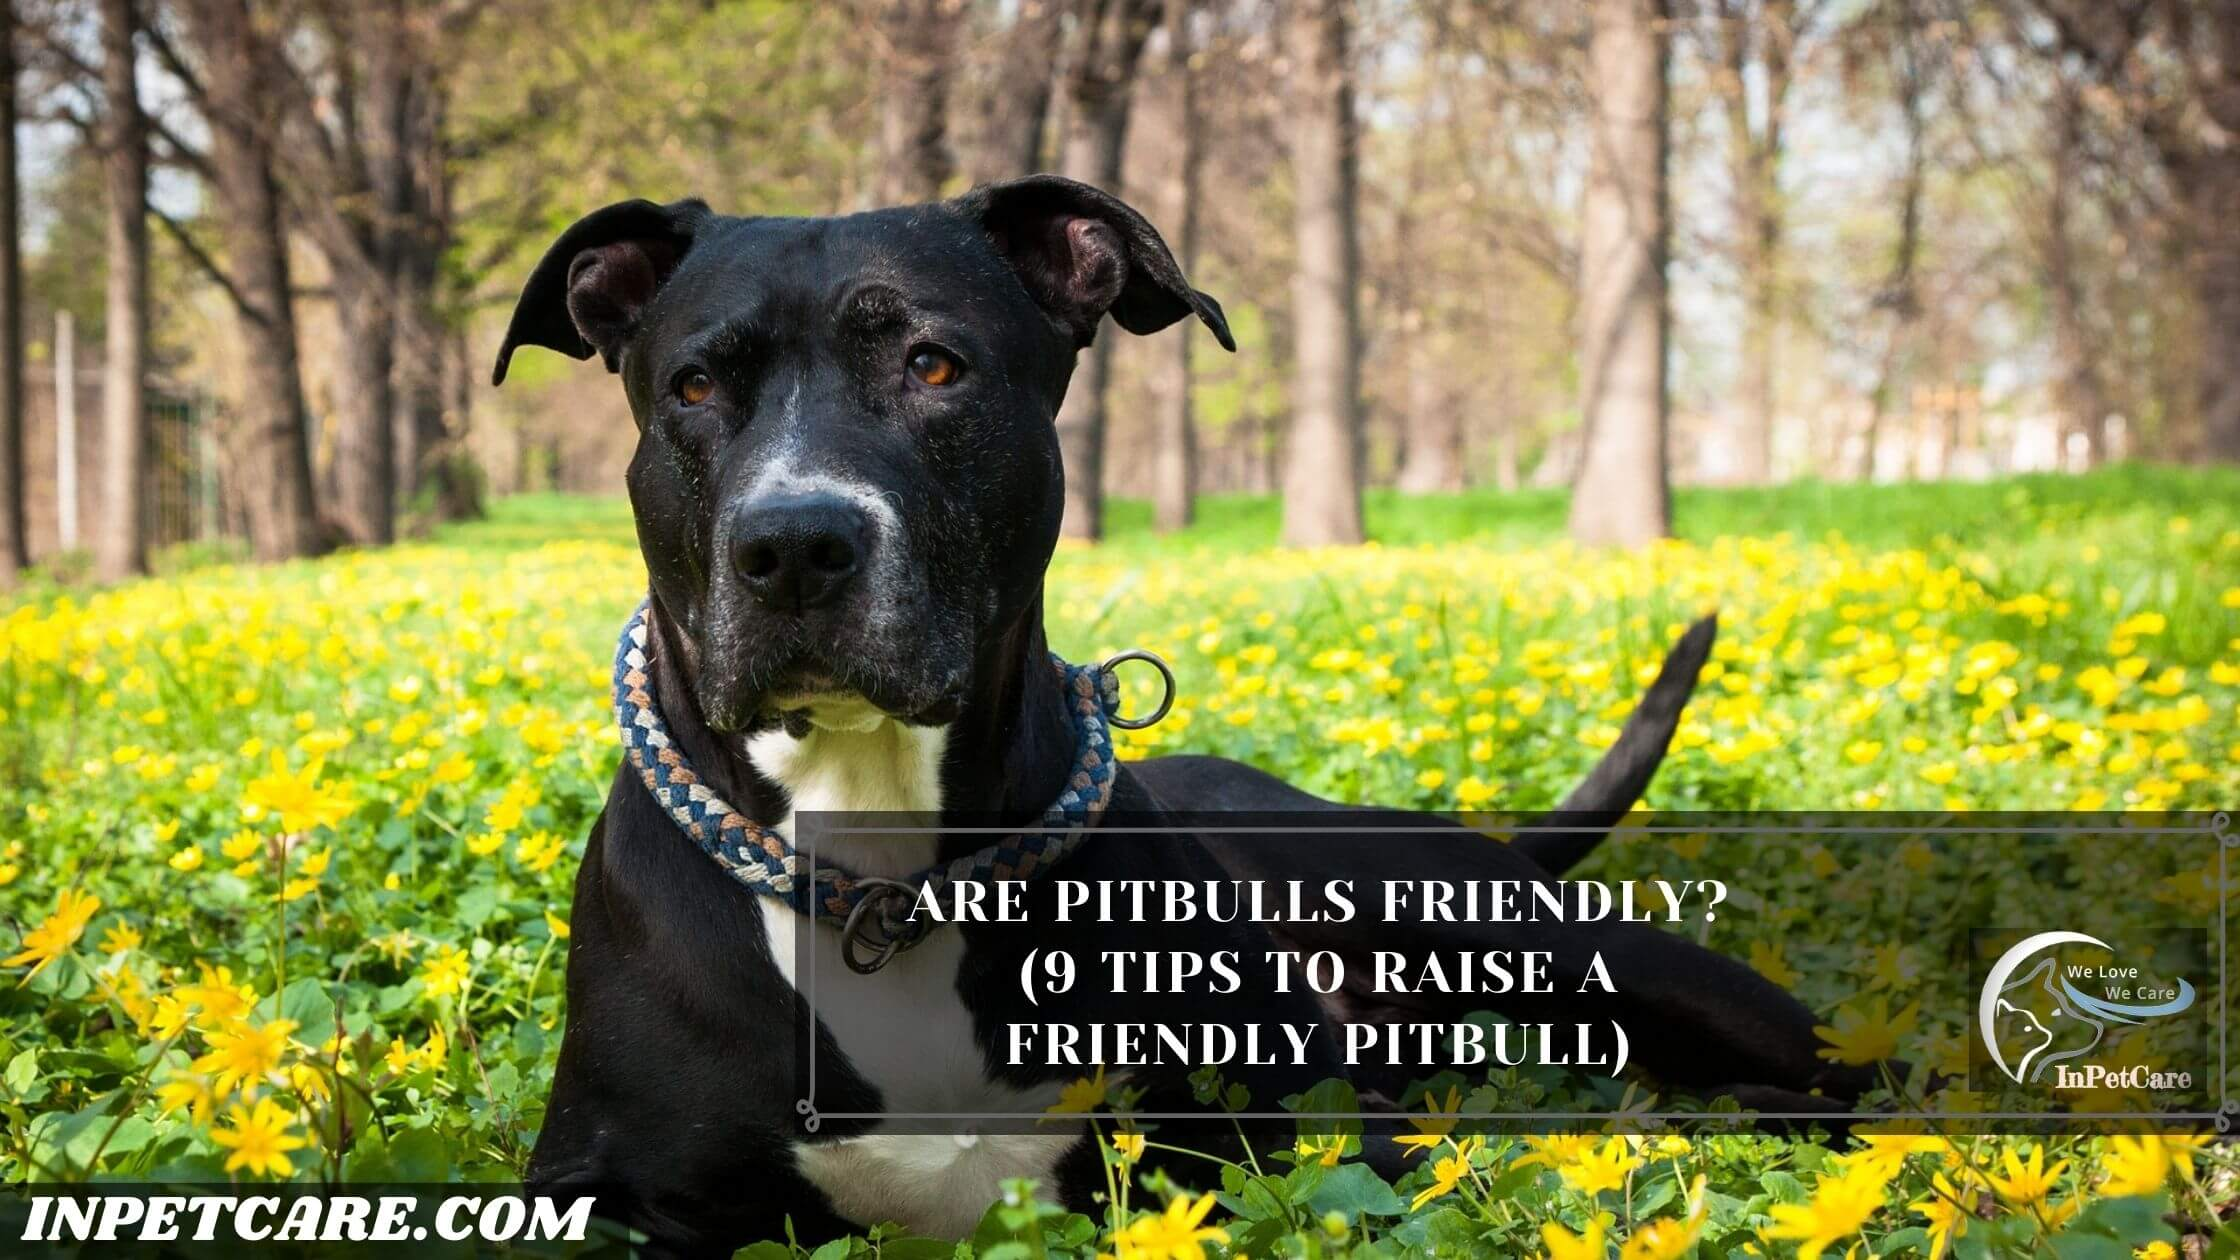 Are Pitbulls Friendly? (9 Tips To Raise A Friendly Pitbull)